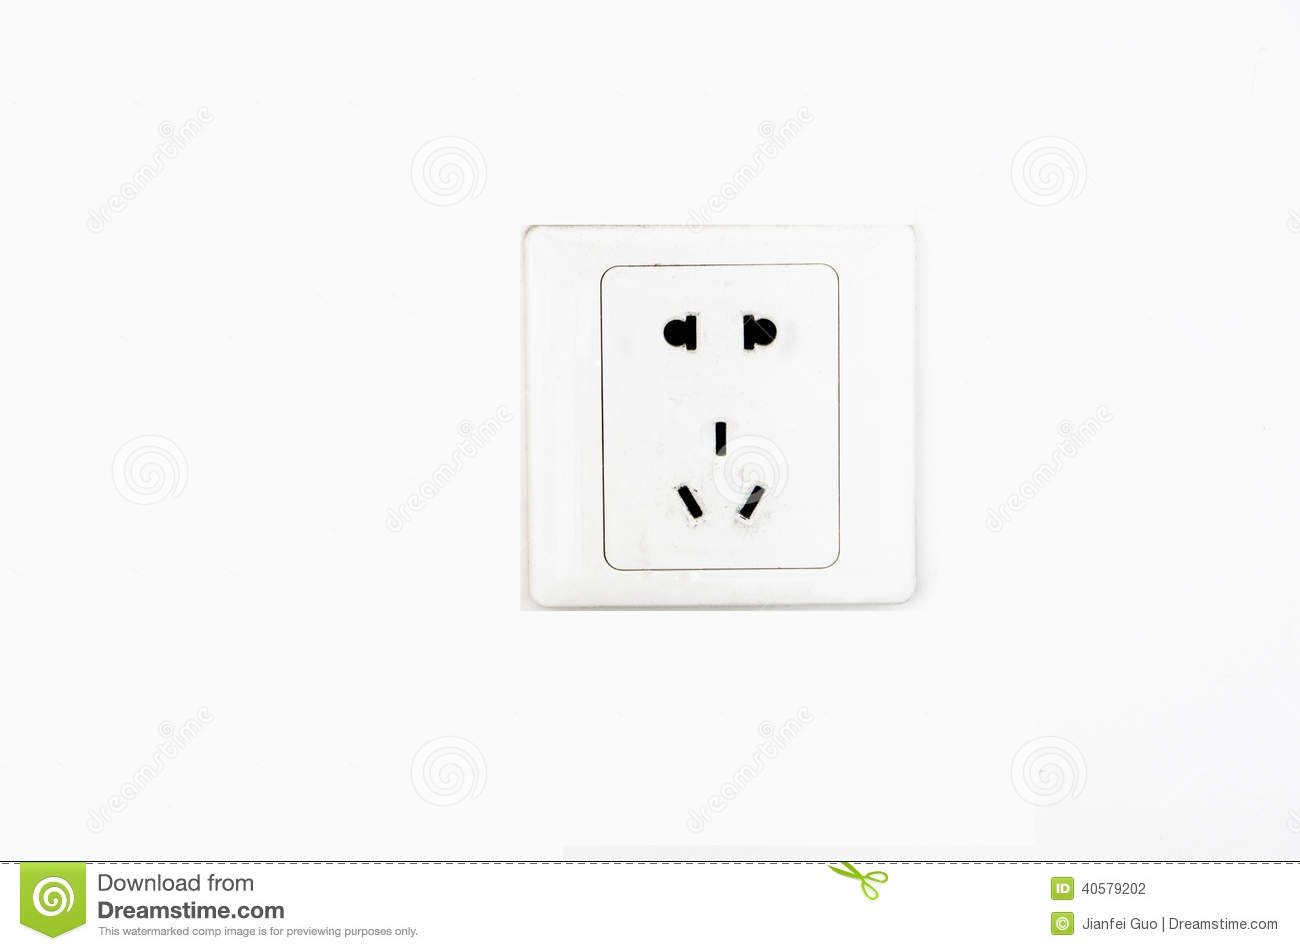 220 Volt Outlet >> Electric Outlet Wall Socket Plug Receptacle Stock Photo